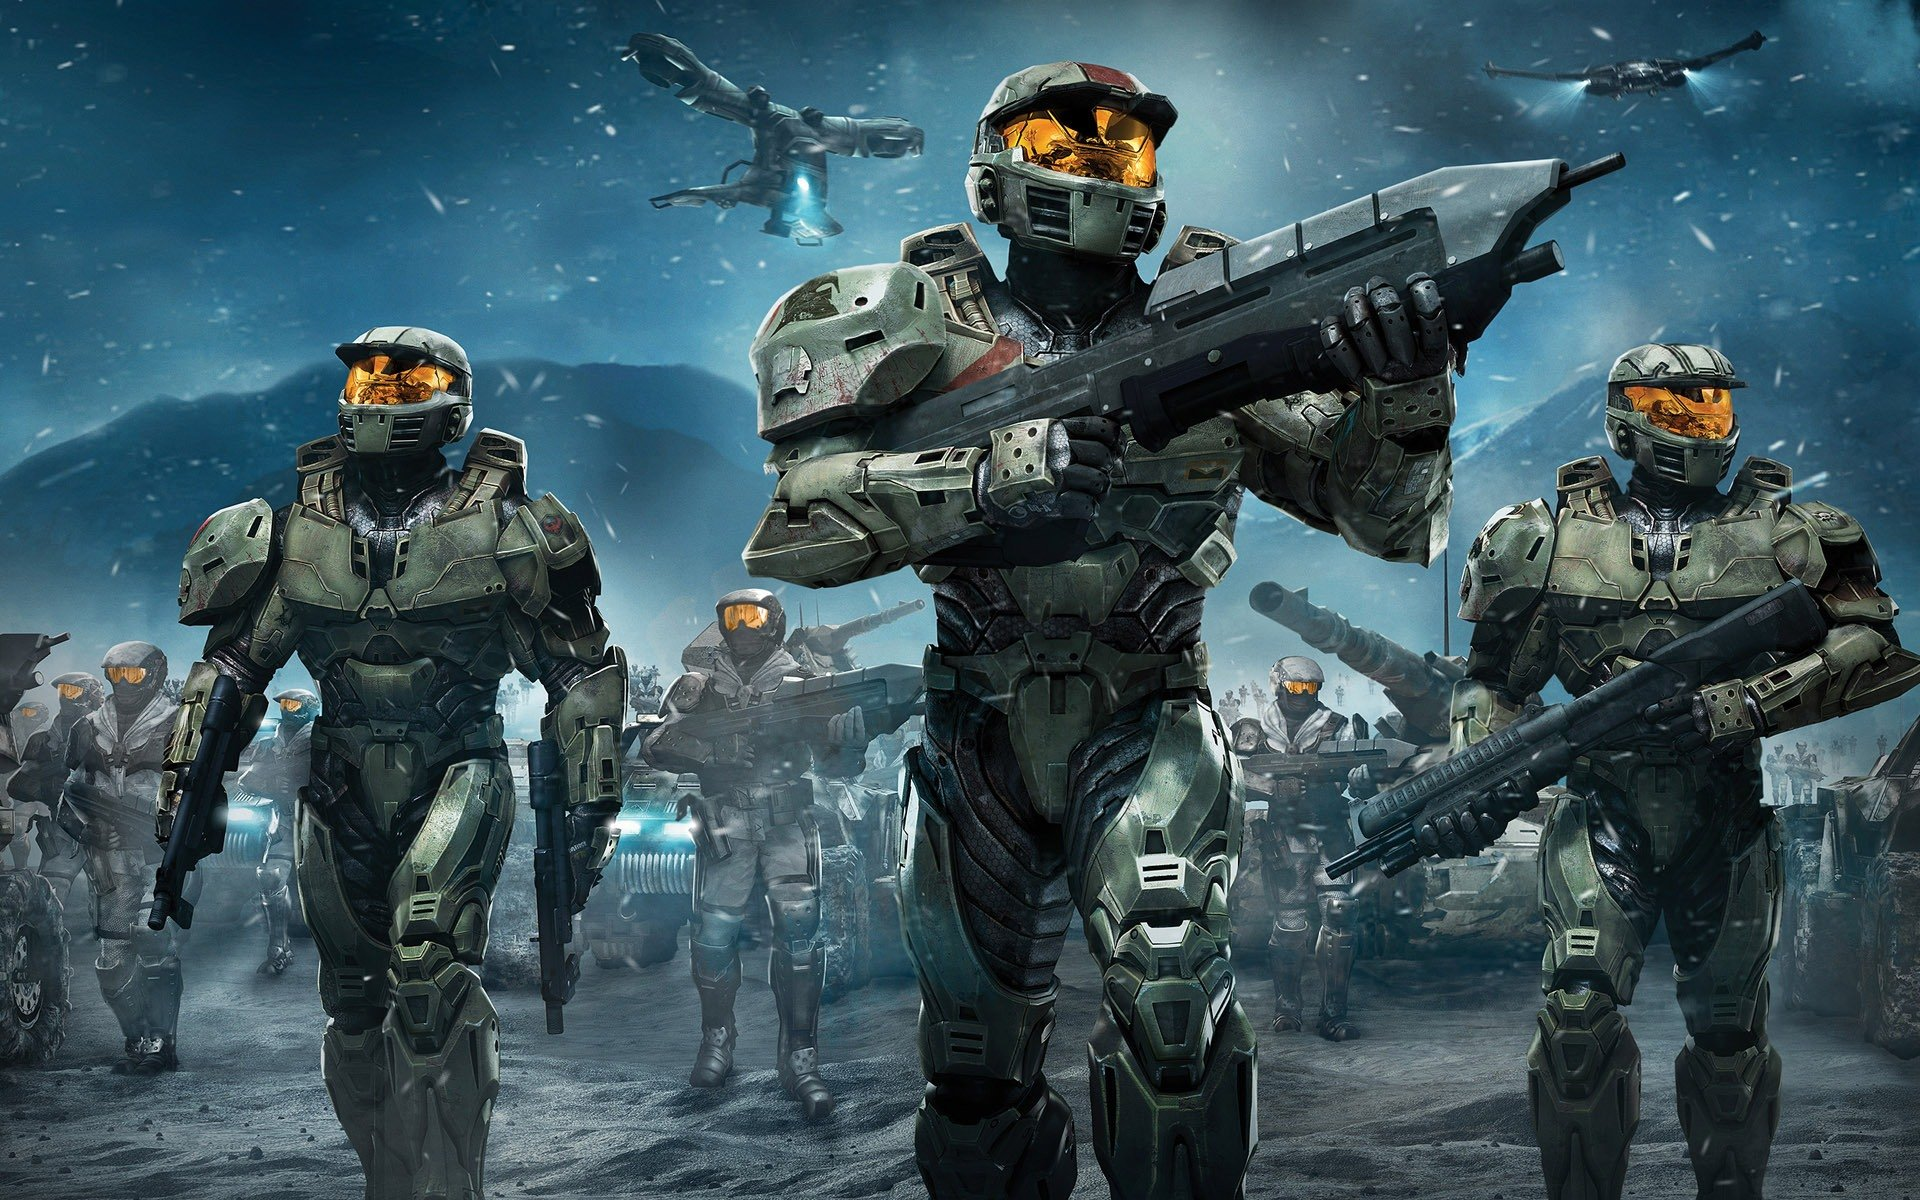 Halo Wars Spartans desktop wallpaper 1920x1200